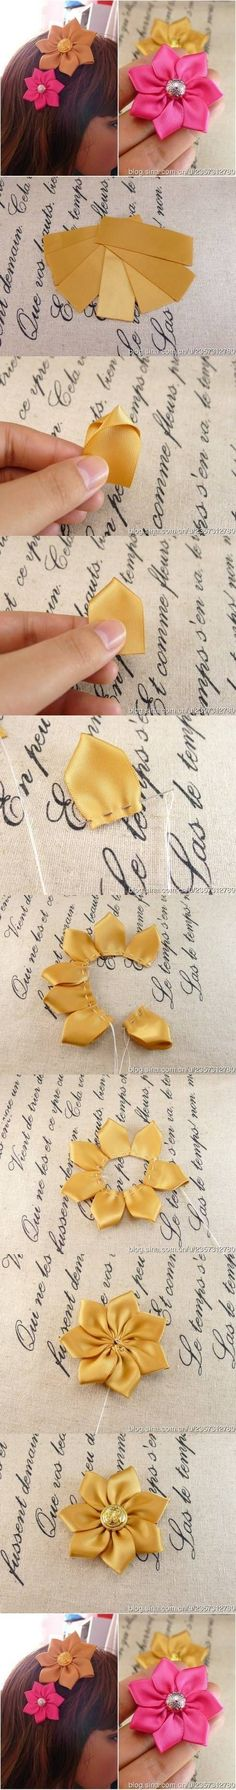 DIY Handmade Ribbon Flowers by FrancesCollins